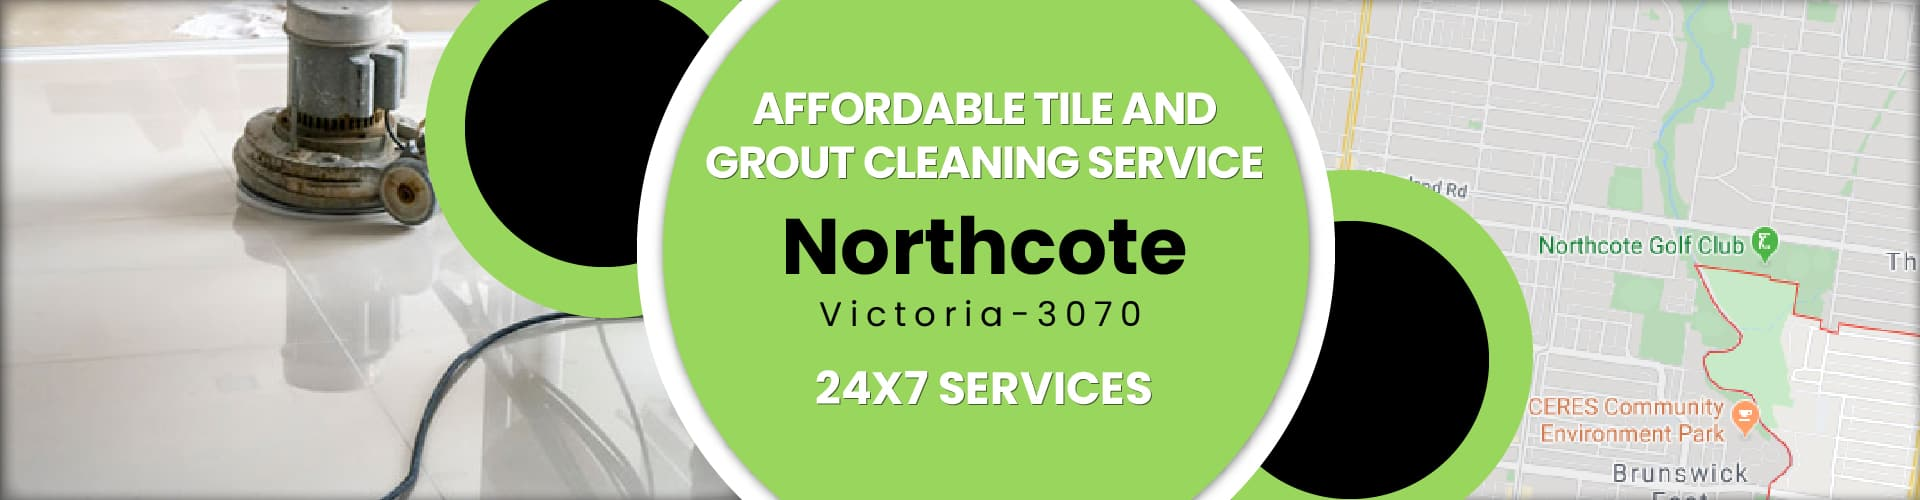 Tile and Grout Cleaning Northcote